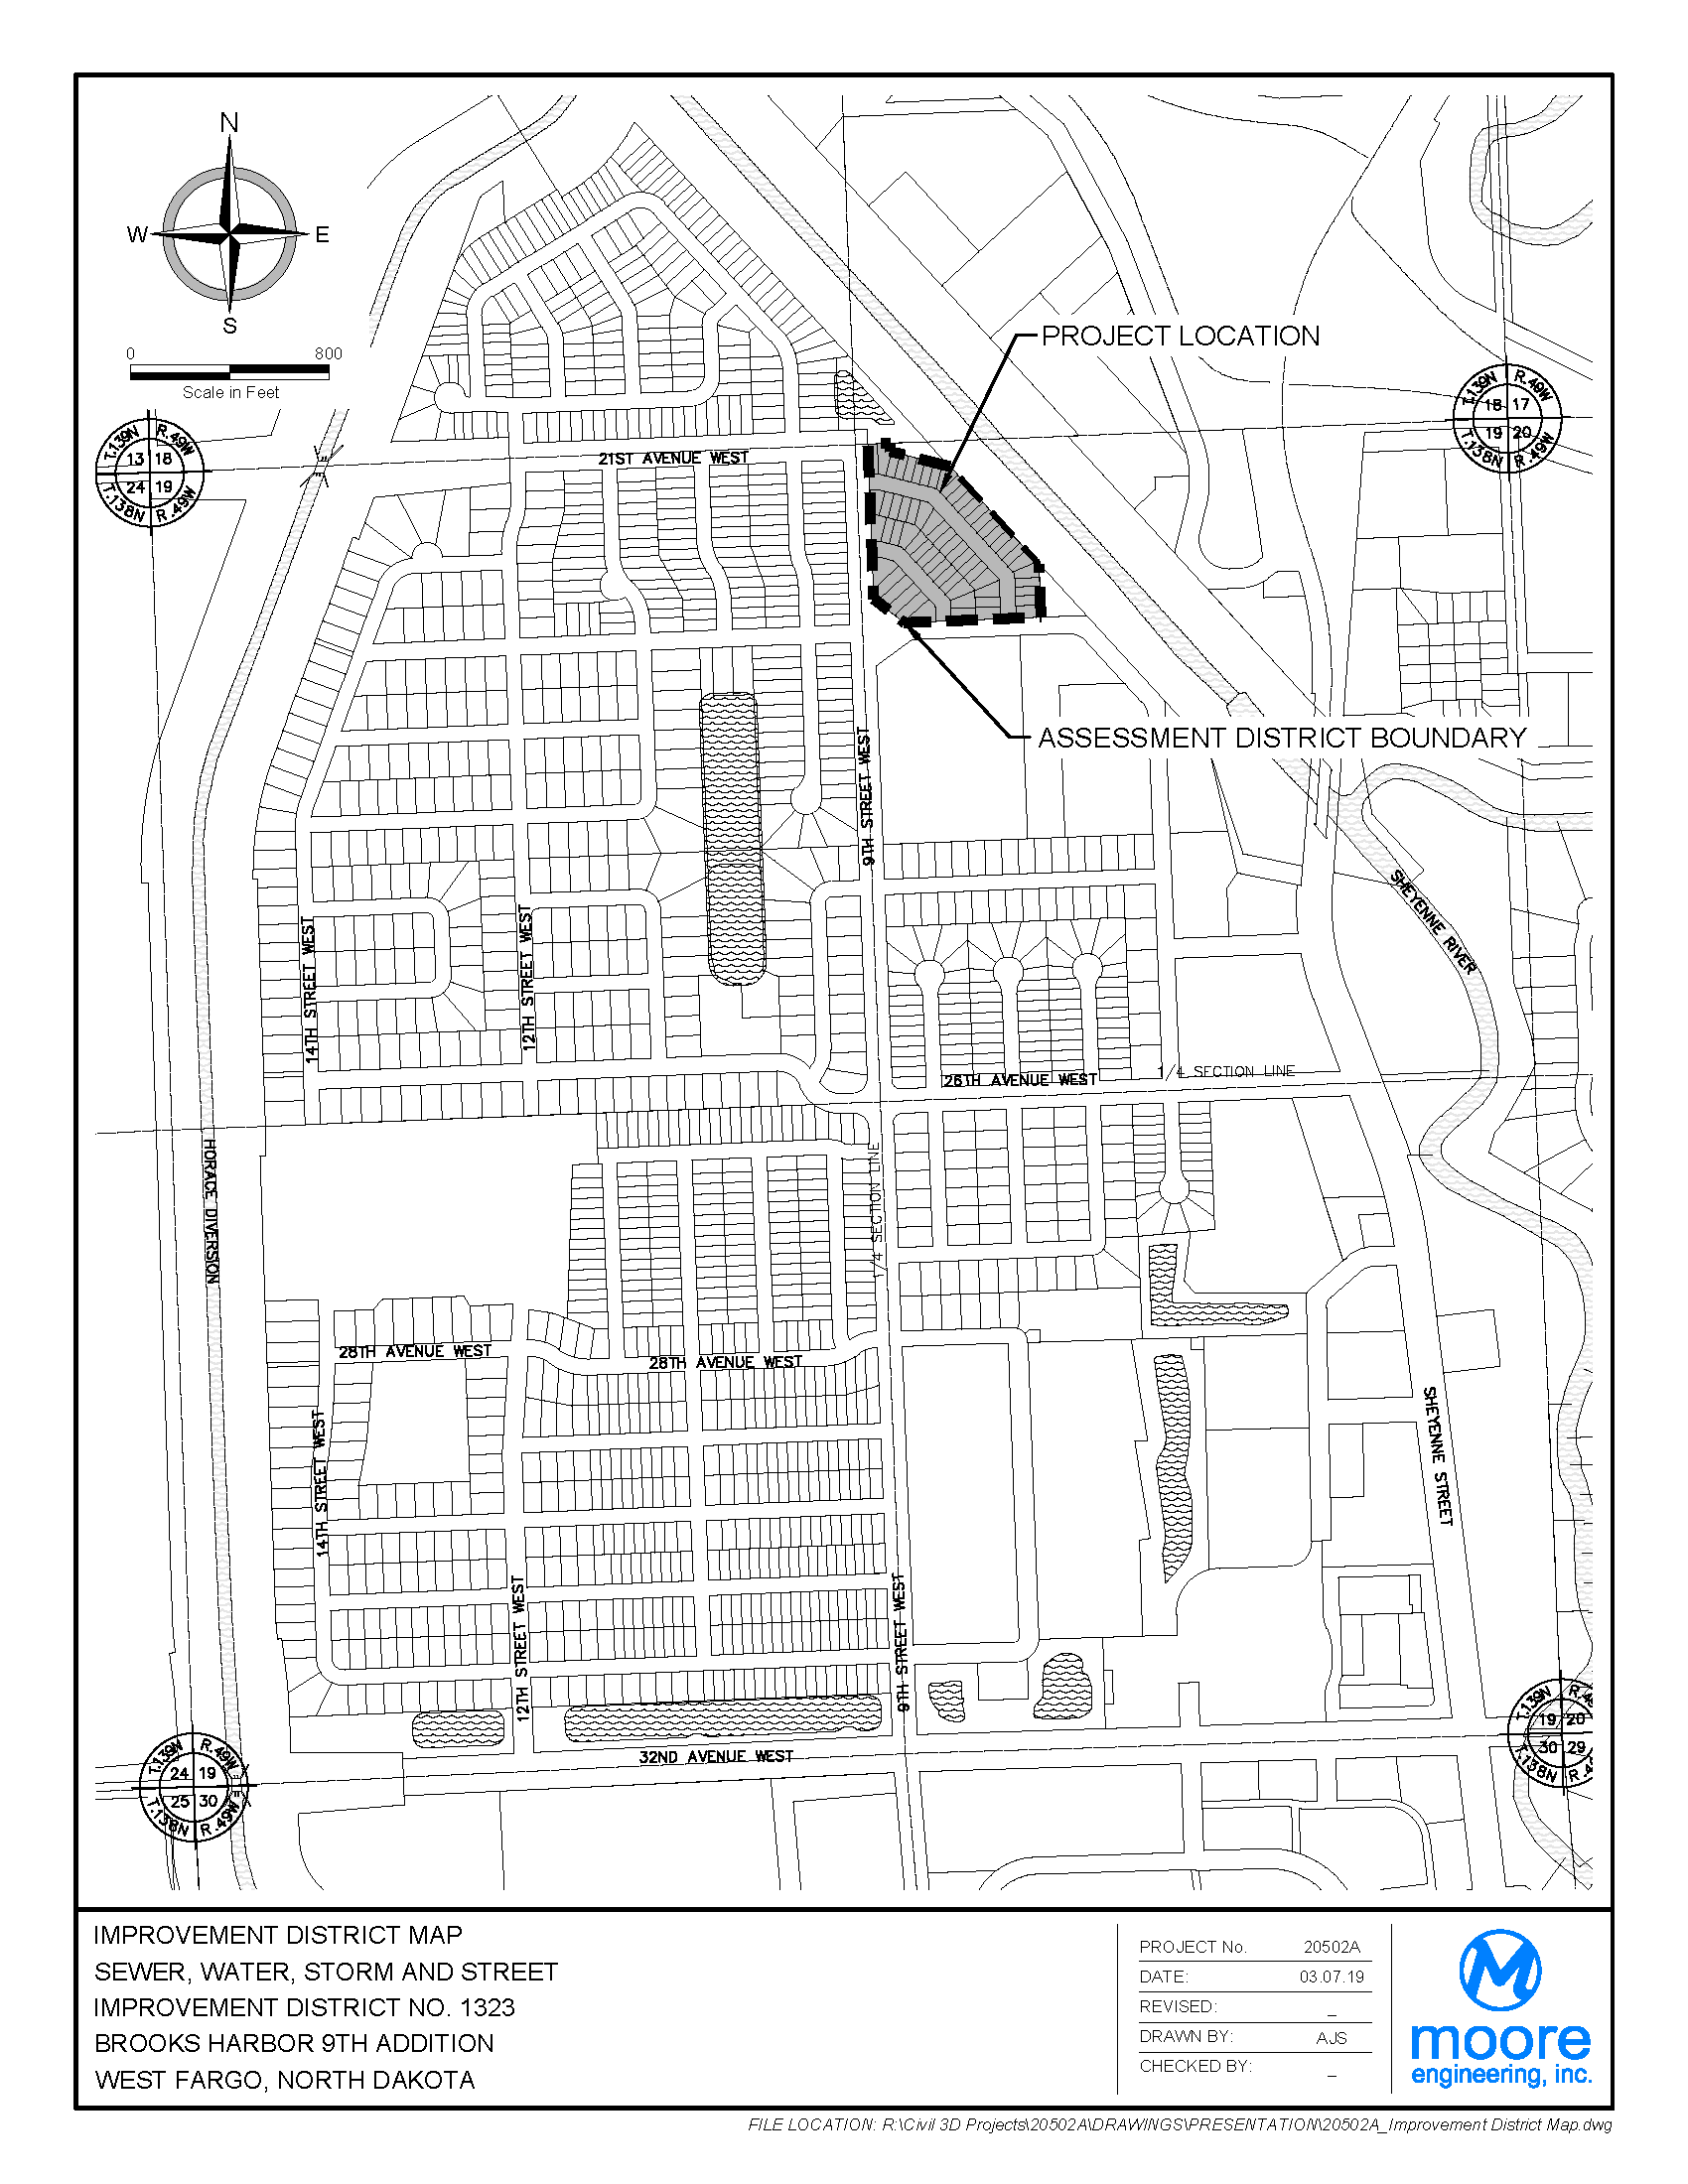 District No. 1323 Brooks Harbor Ninth Addition Assessment District Boundary Map